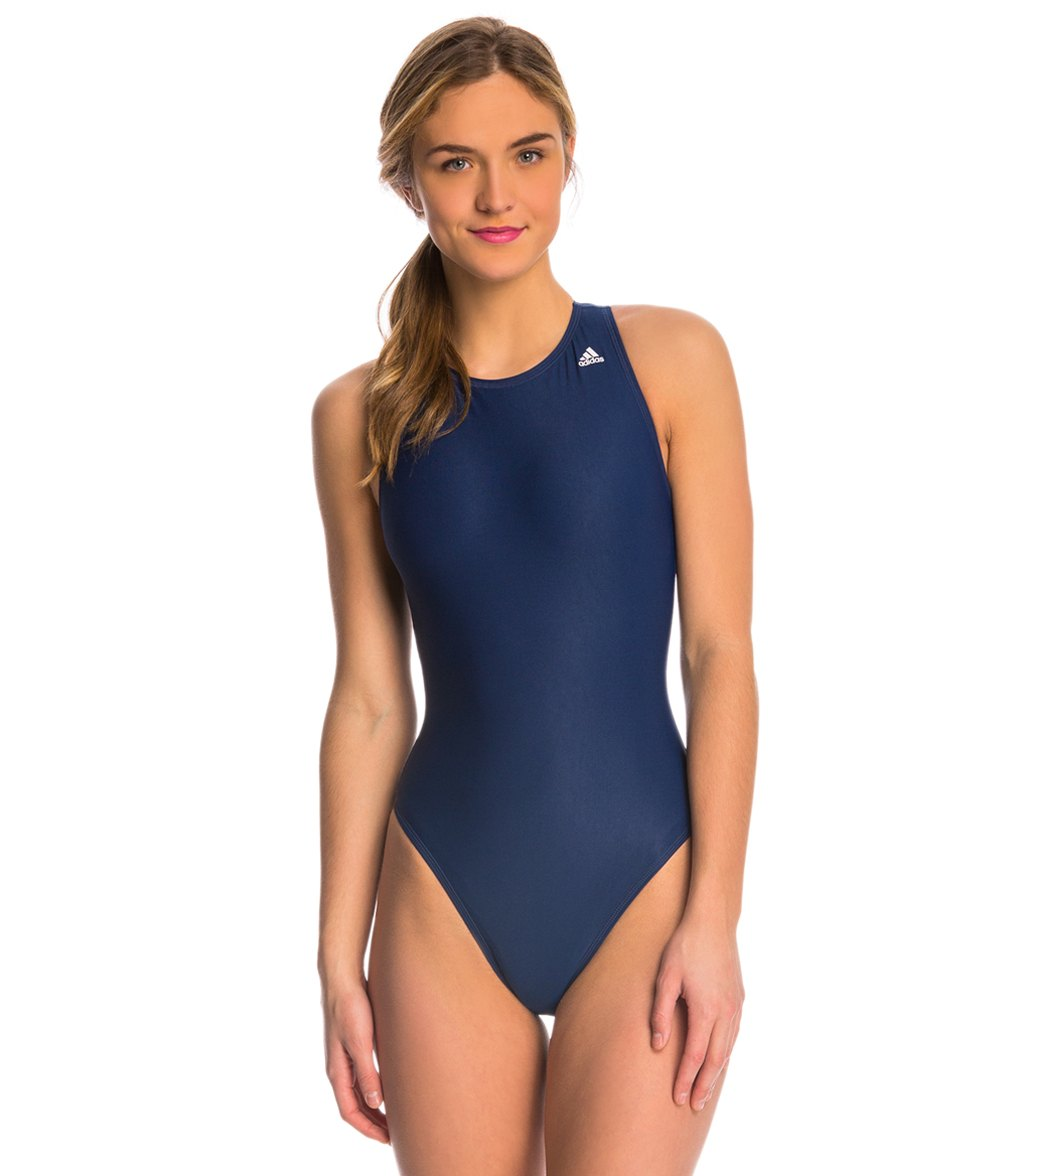 ecc6628c28 Adidas High Neck One Piece Waterpolo Swimsuit